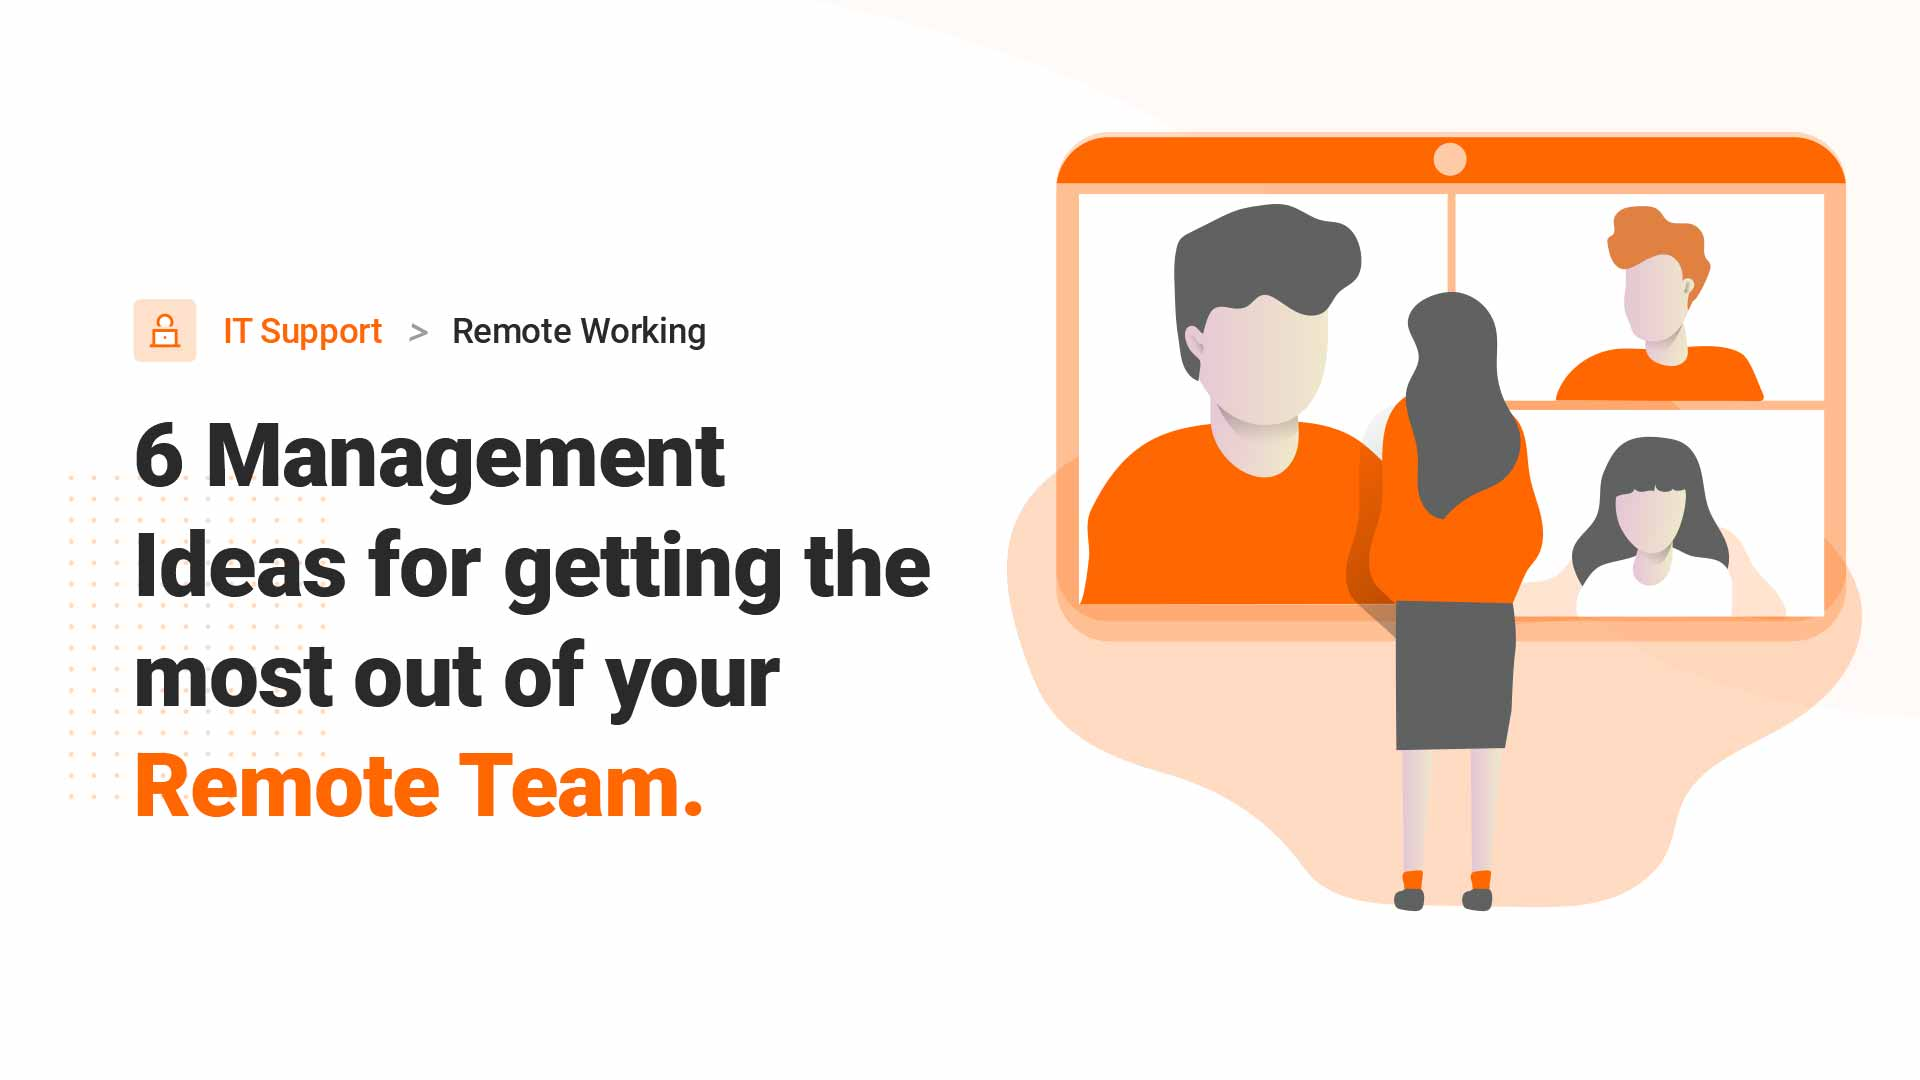 6 Management Ideas for getting the most out of your Remote Team